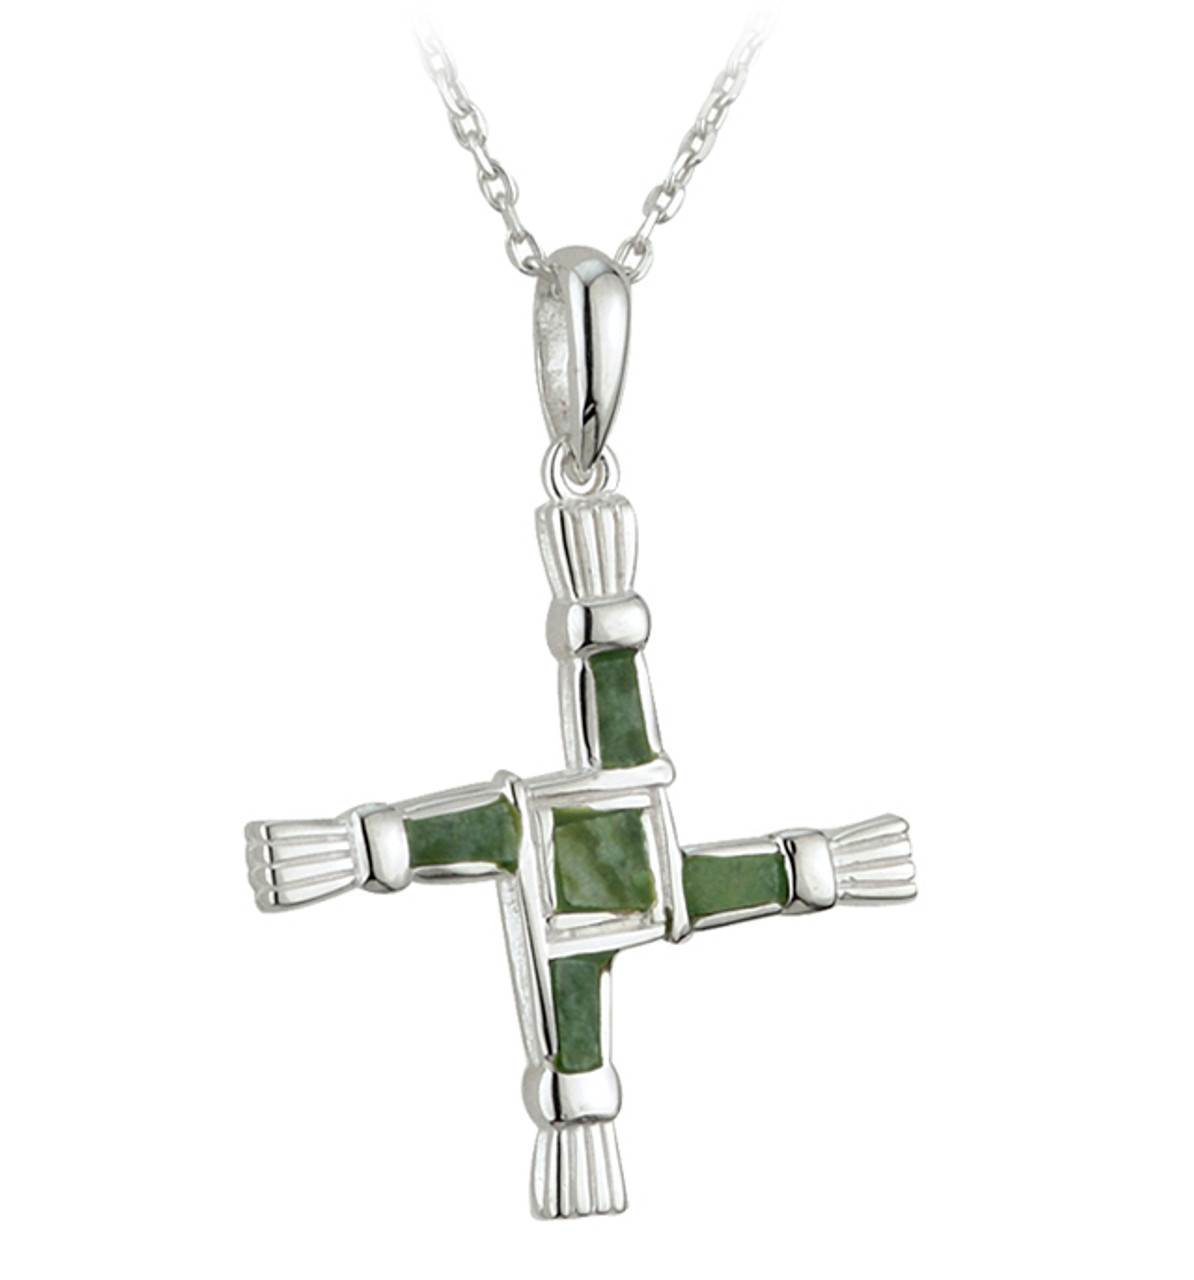 St. Brigid's Cross with Connemara Marble